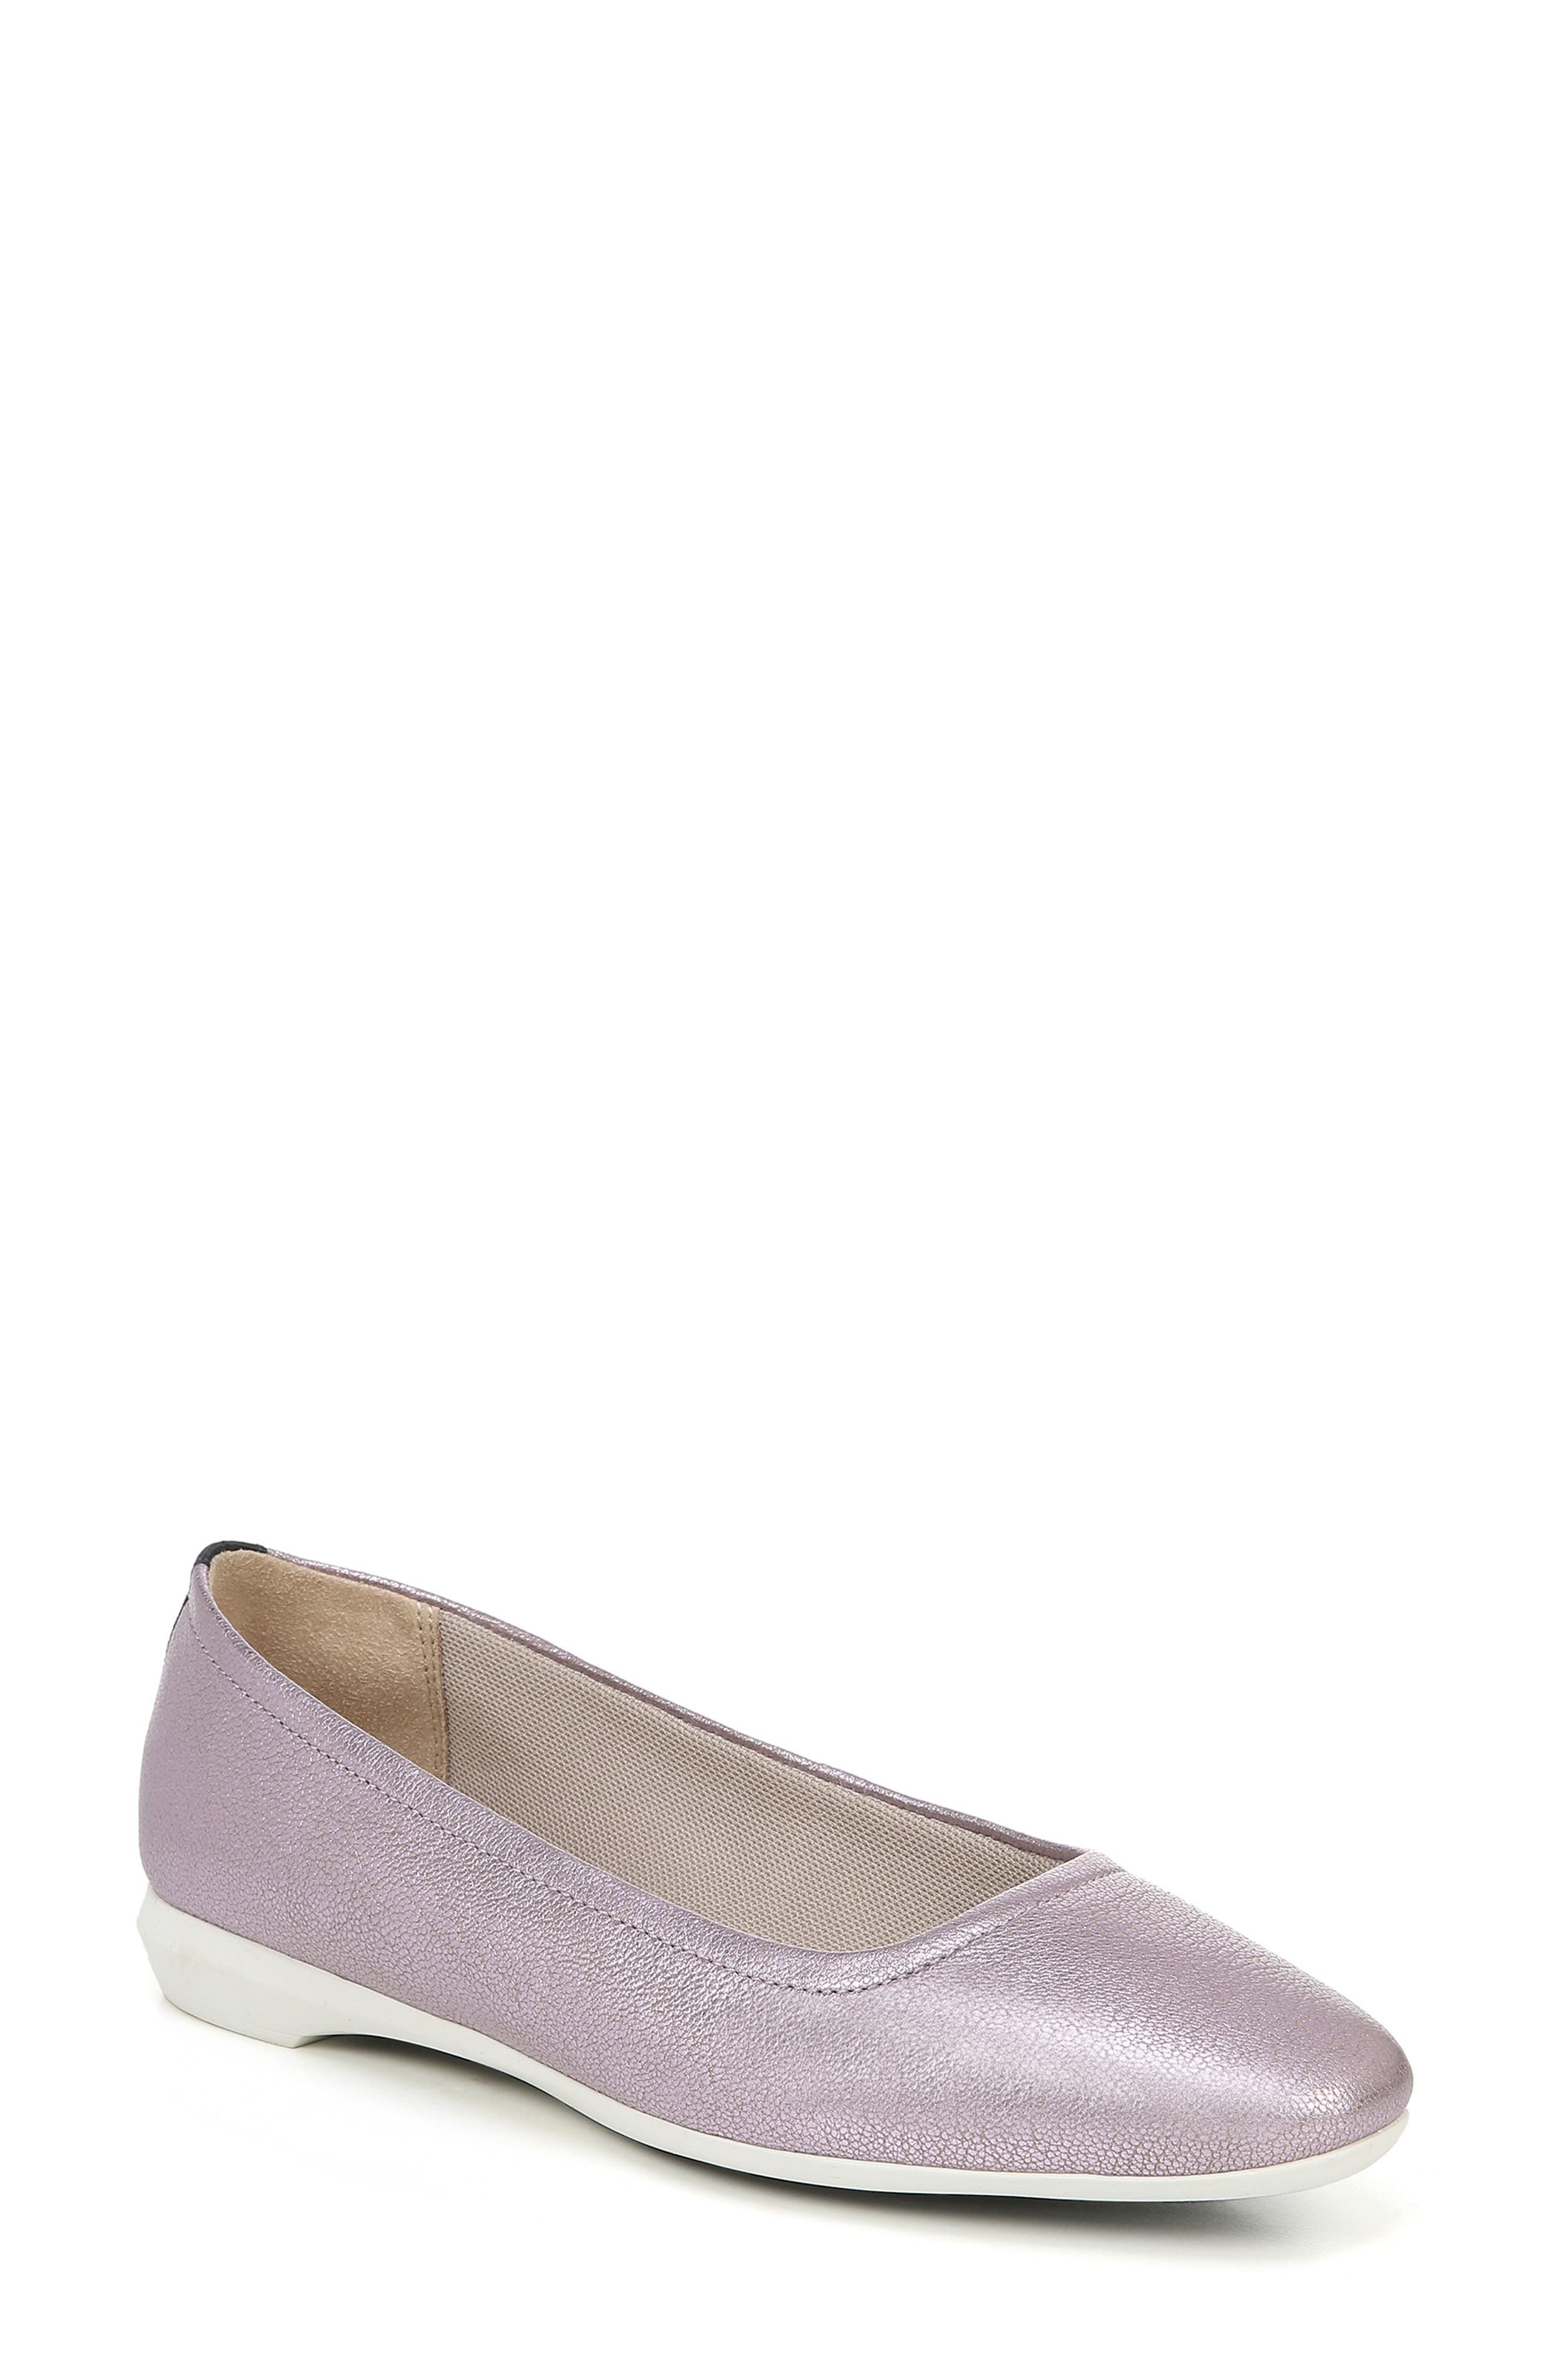 Naturalizer Alya Flat, Purple